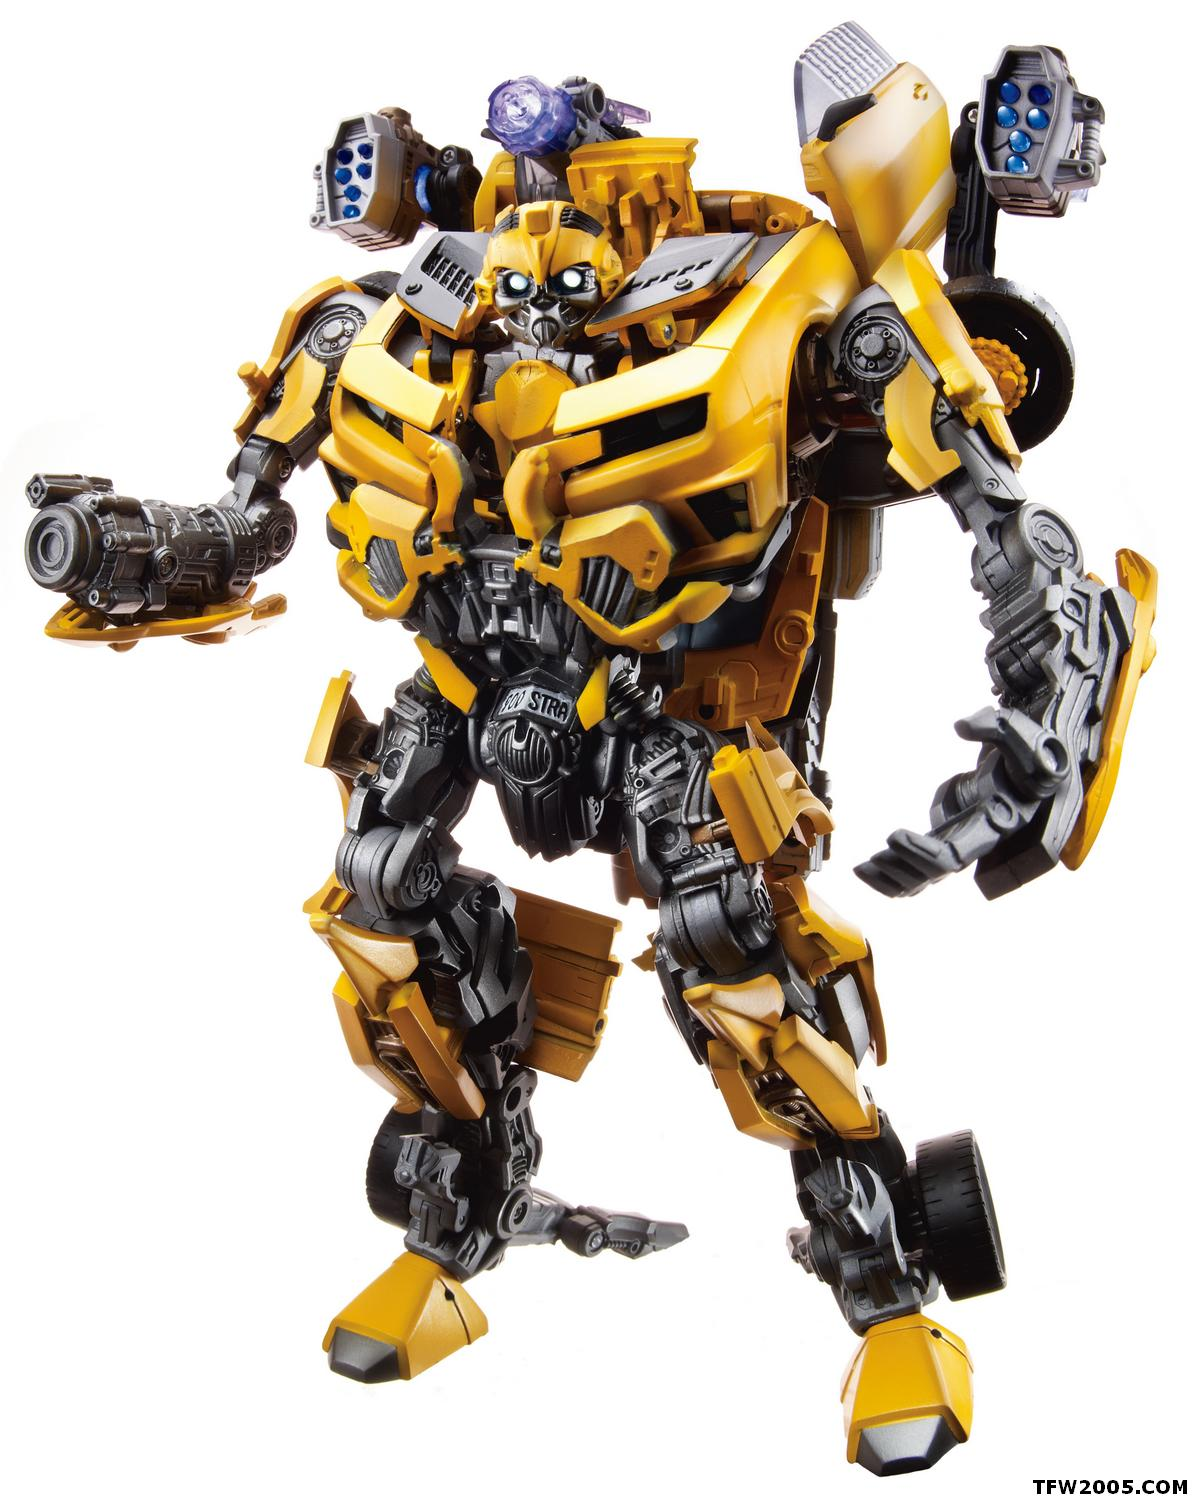 Best Transformers Toys And Action Figures : De transformers mdverde imágenes oficiales